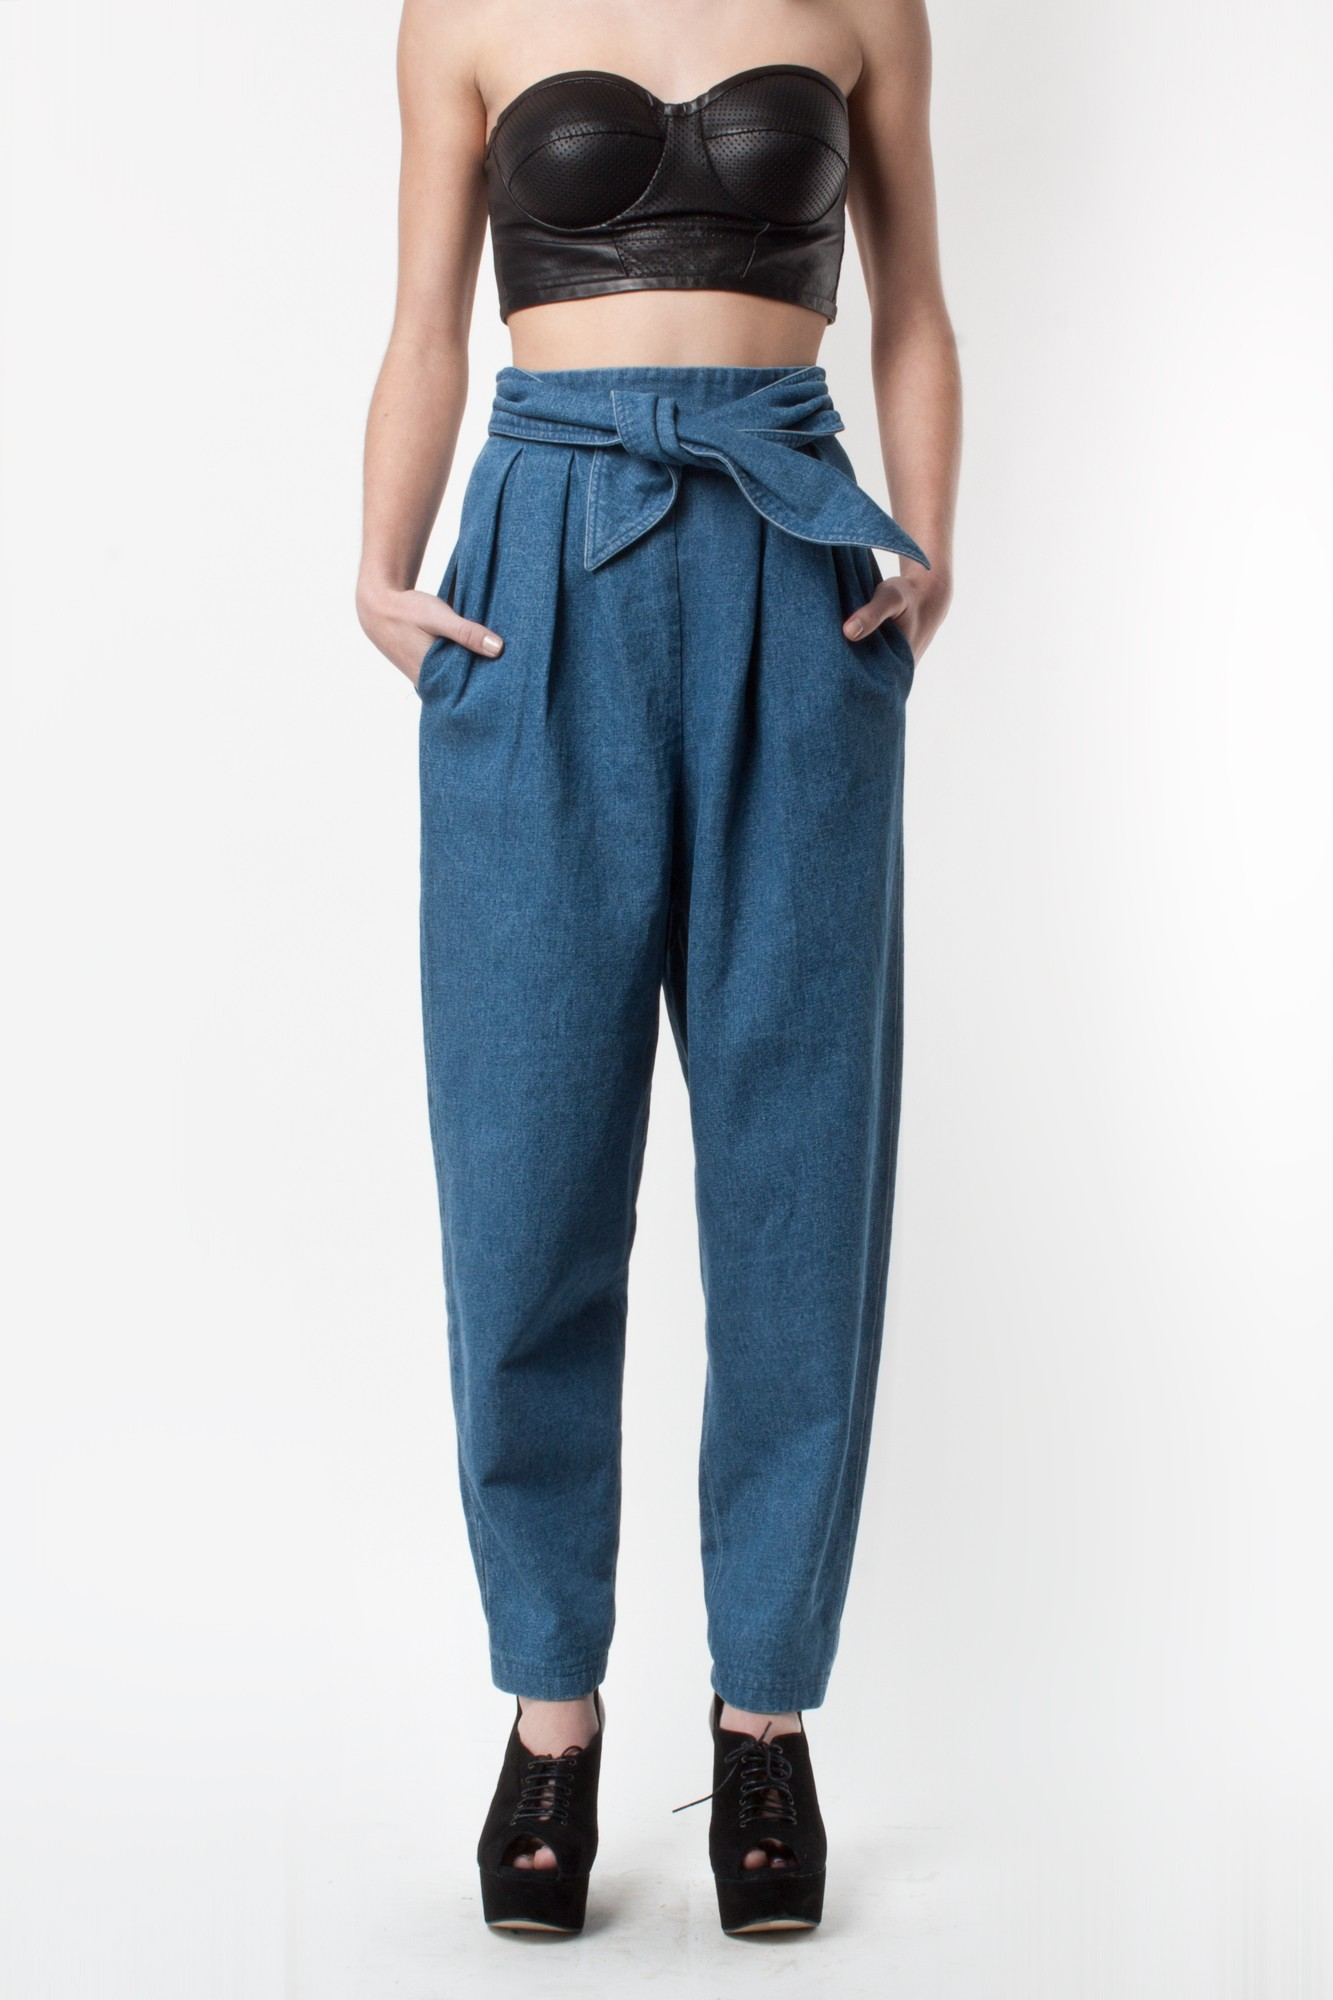 R/h knot trousers in denim